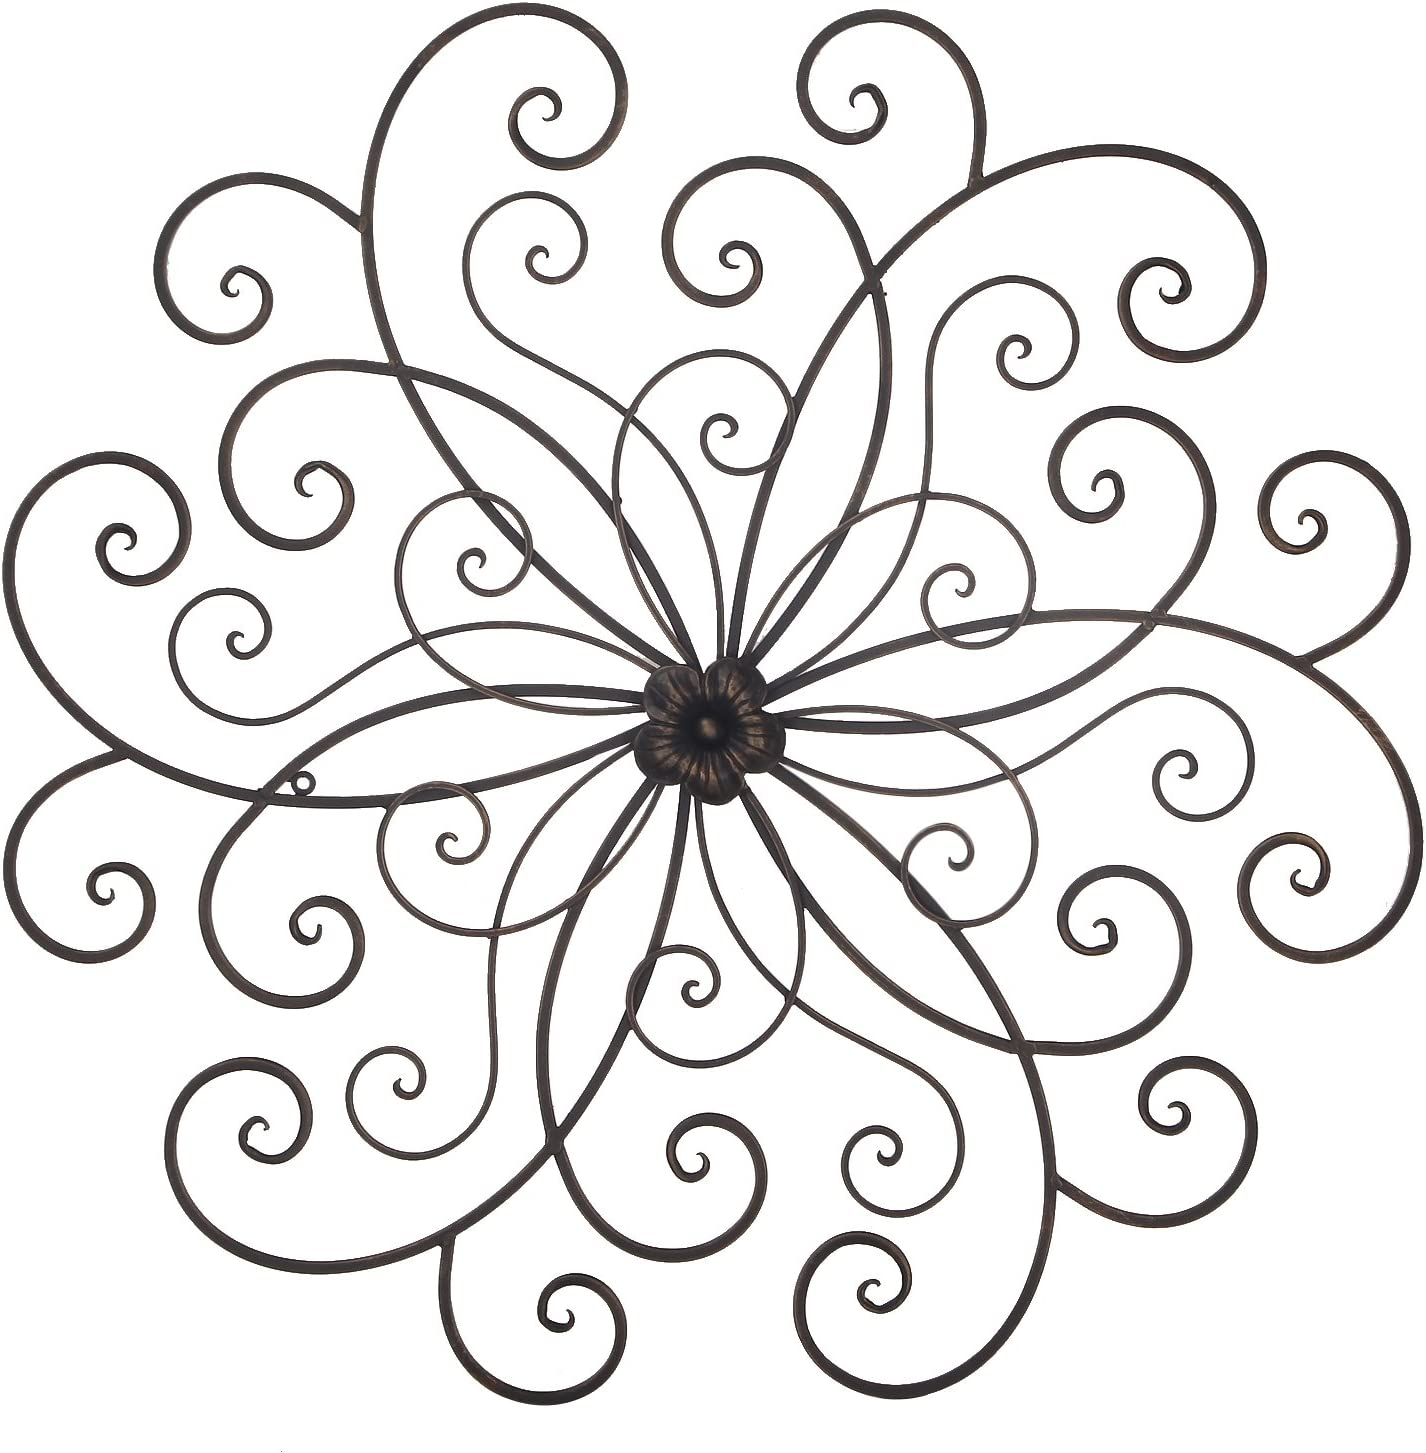 Adeco Bronze Flower Urban Design Metal Wall Decor for Nature Home Art Decoration & Kitchen Gifts - 30x29.7 Inches